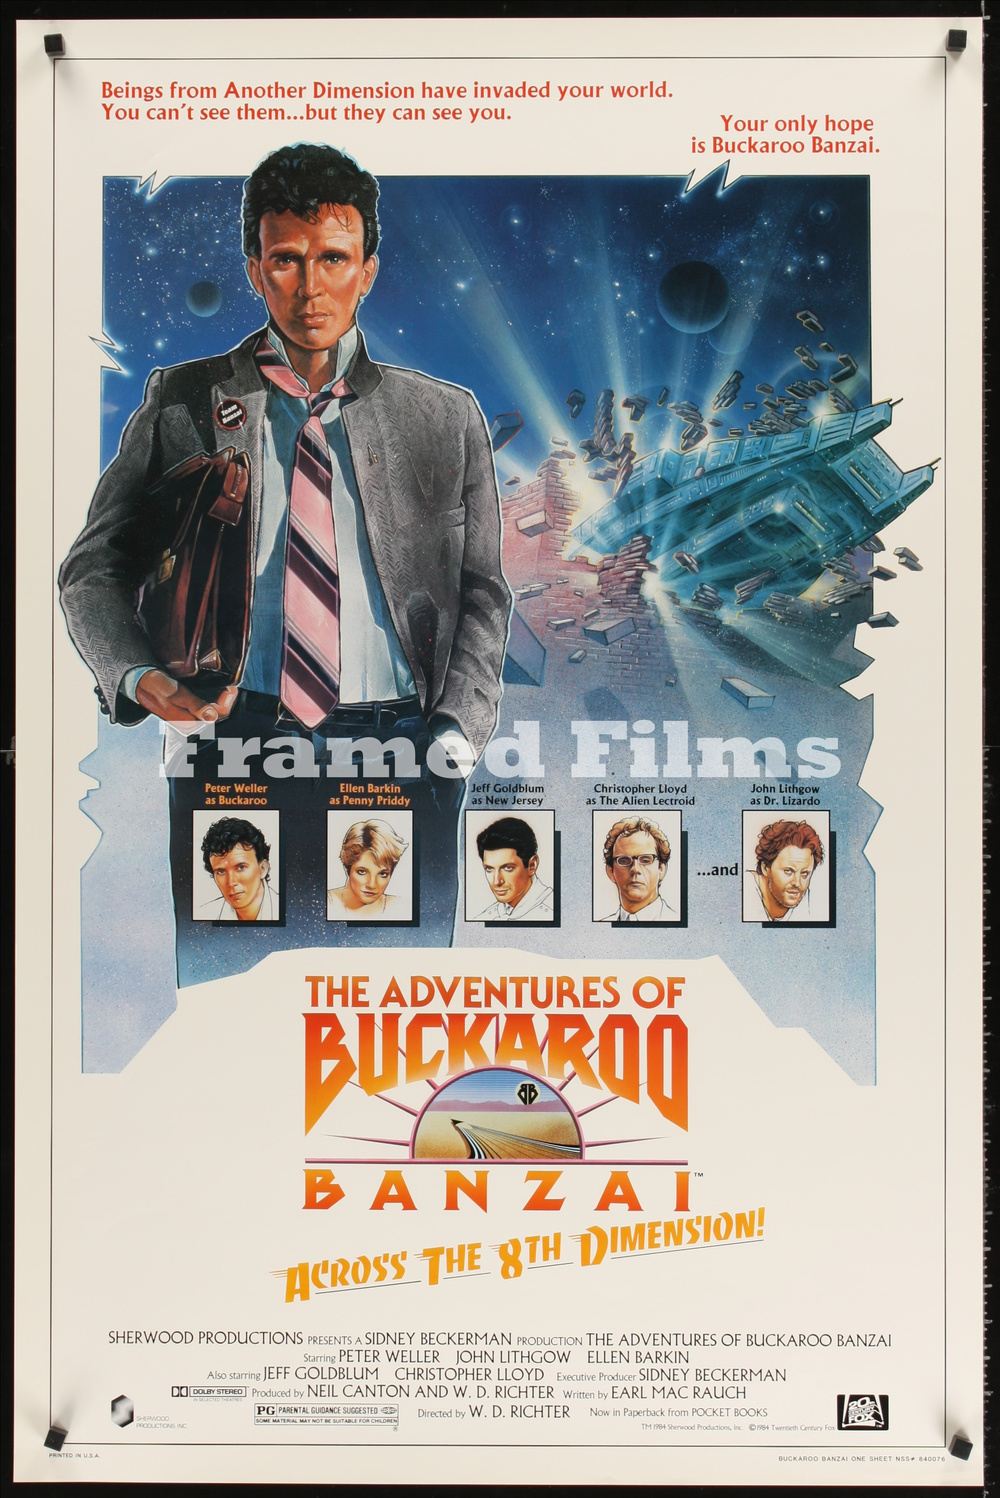 adventures_of_buckaroo_banzai_JC02164_L.jpg